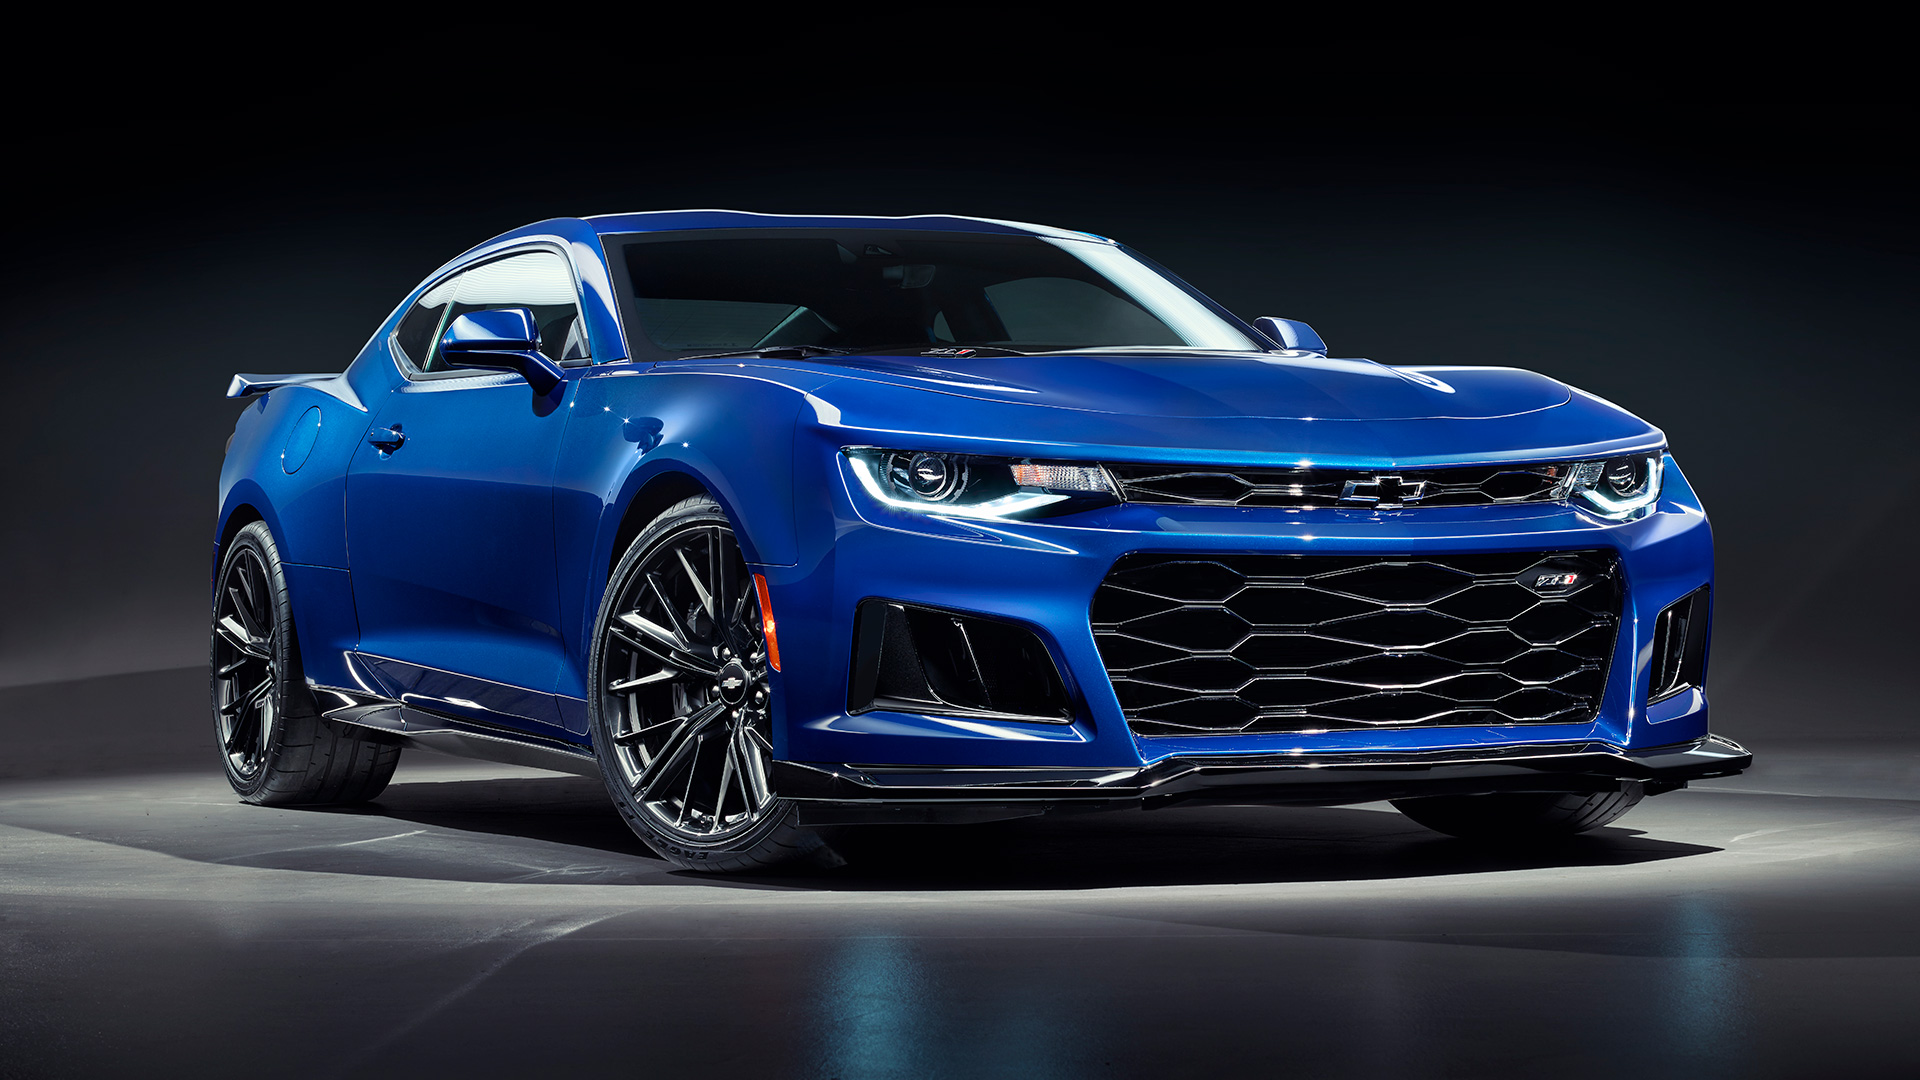 Hsv Chevrolet Camaro Zl1 Powers Into Hsv Range